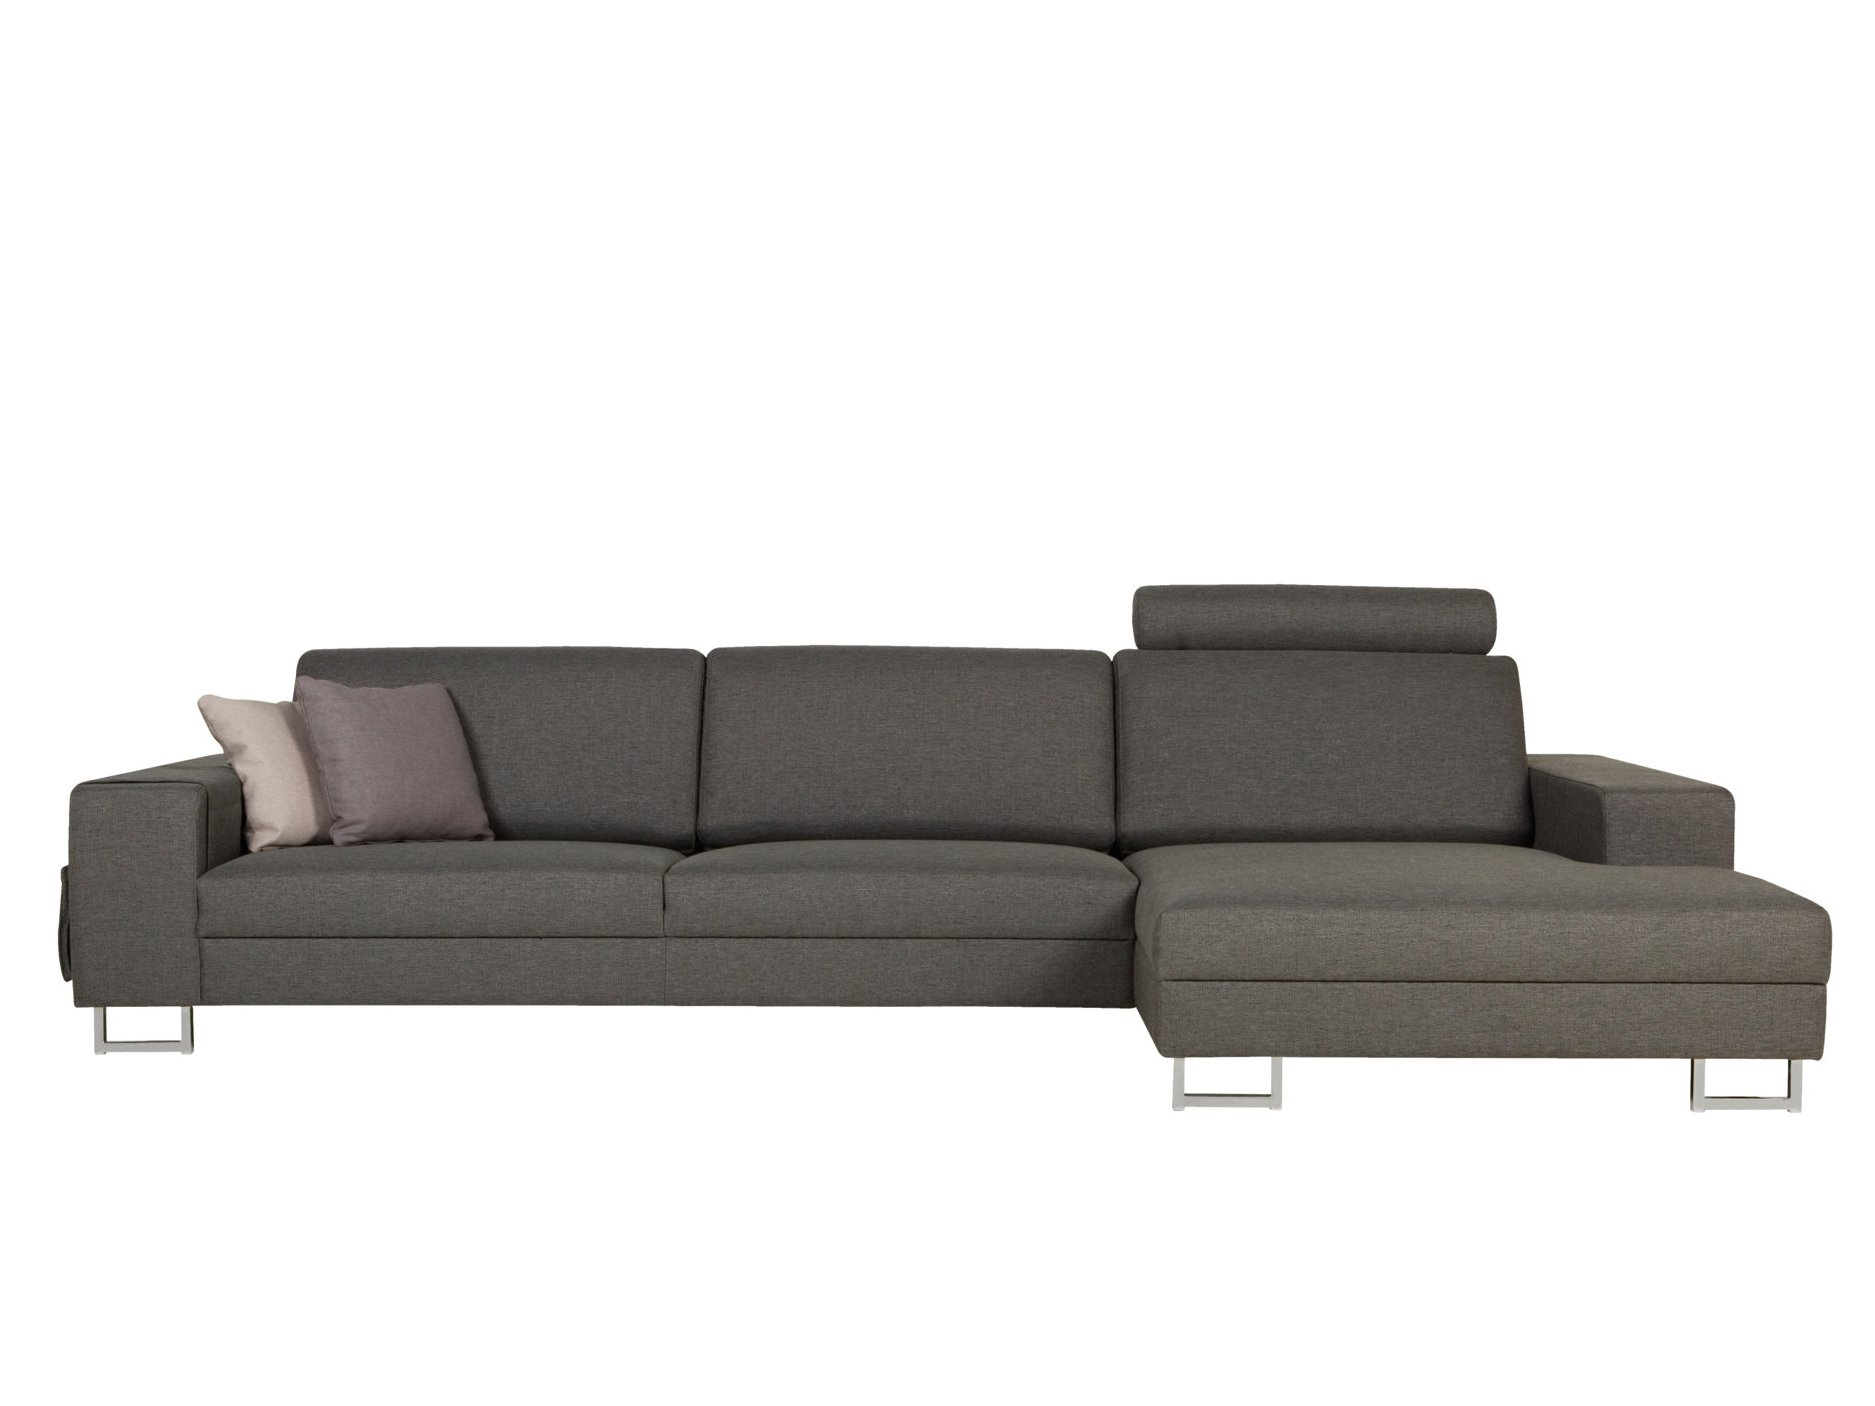 Quattro sofa with chaise longue quattro collection by sits for Chaise longue sofa